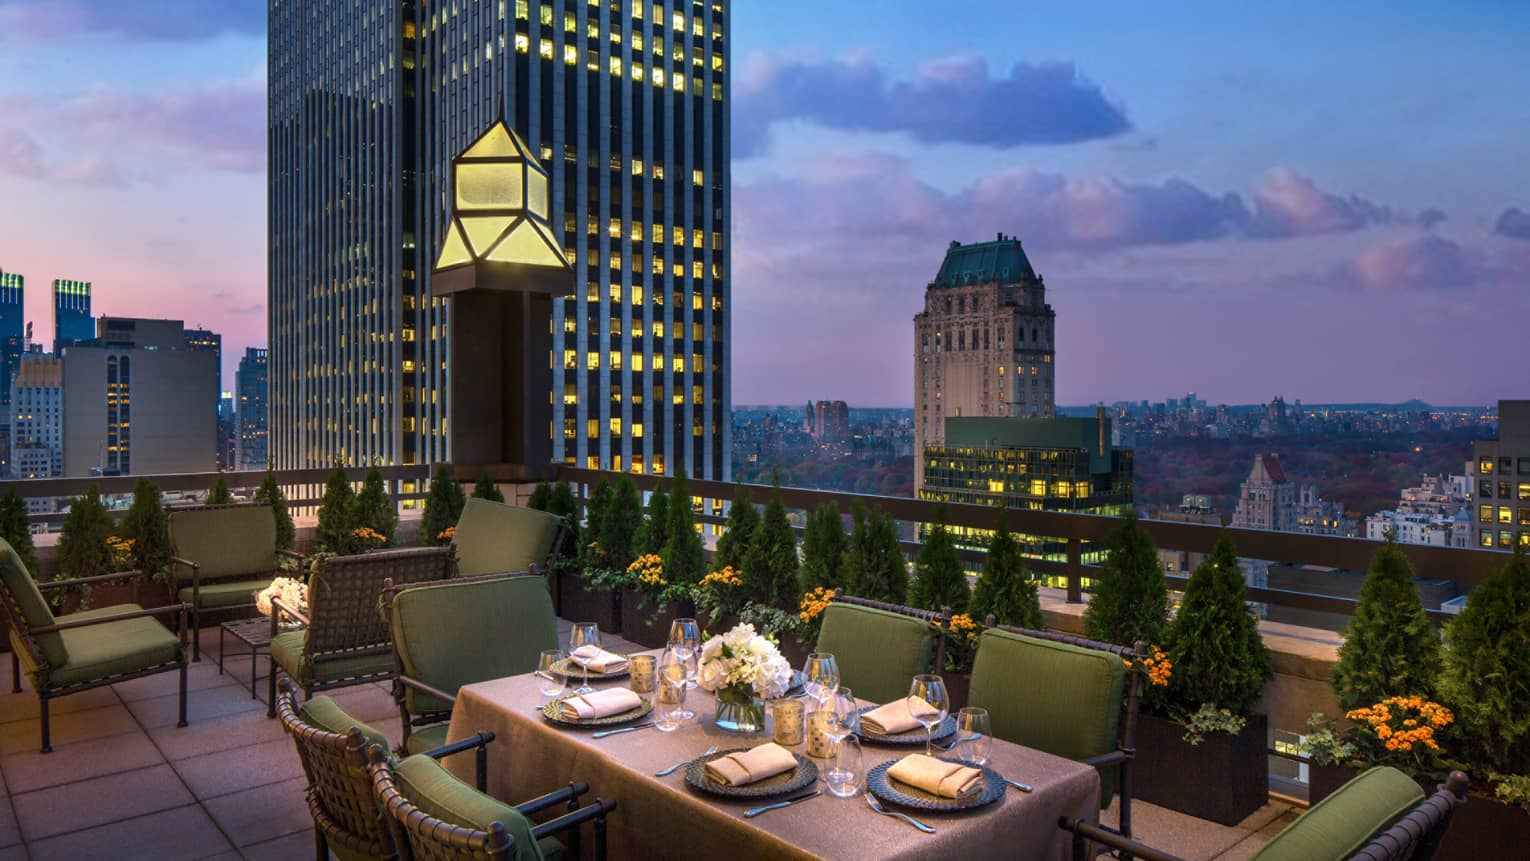 Private patio dining table with plush green cushions on chairs on rooftop terrace, city views at dusk